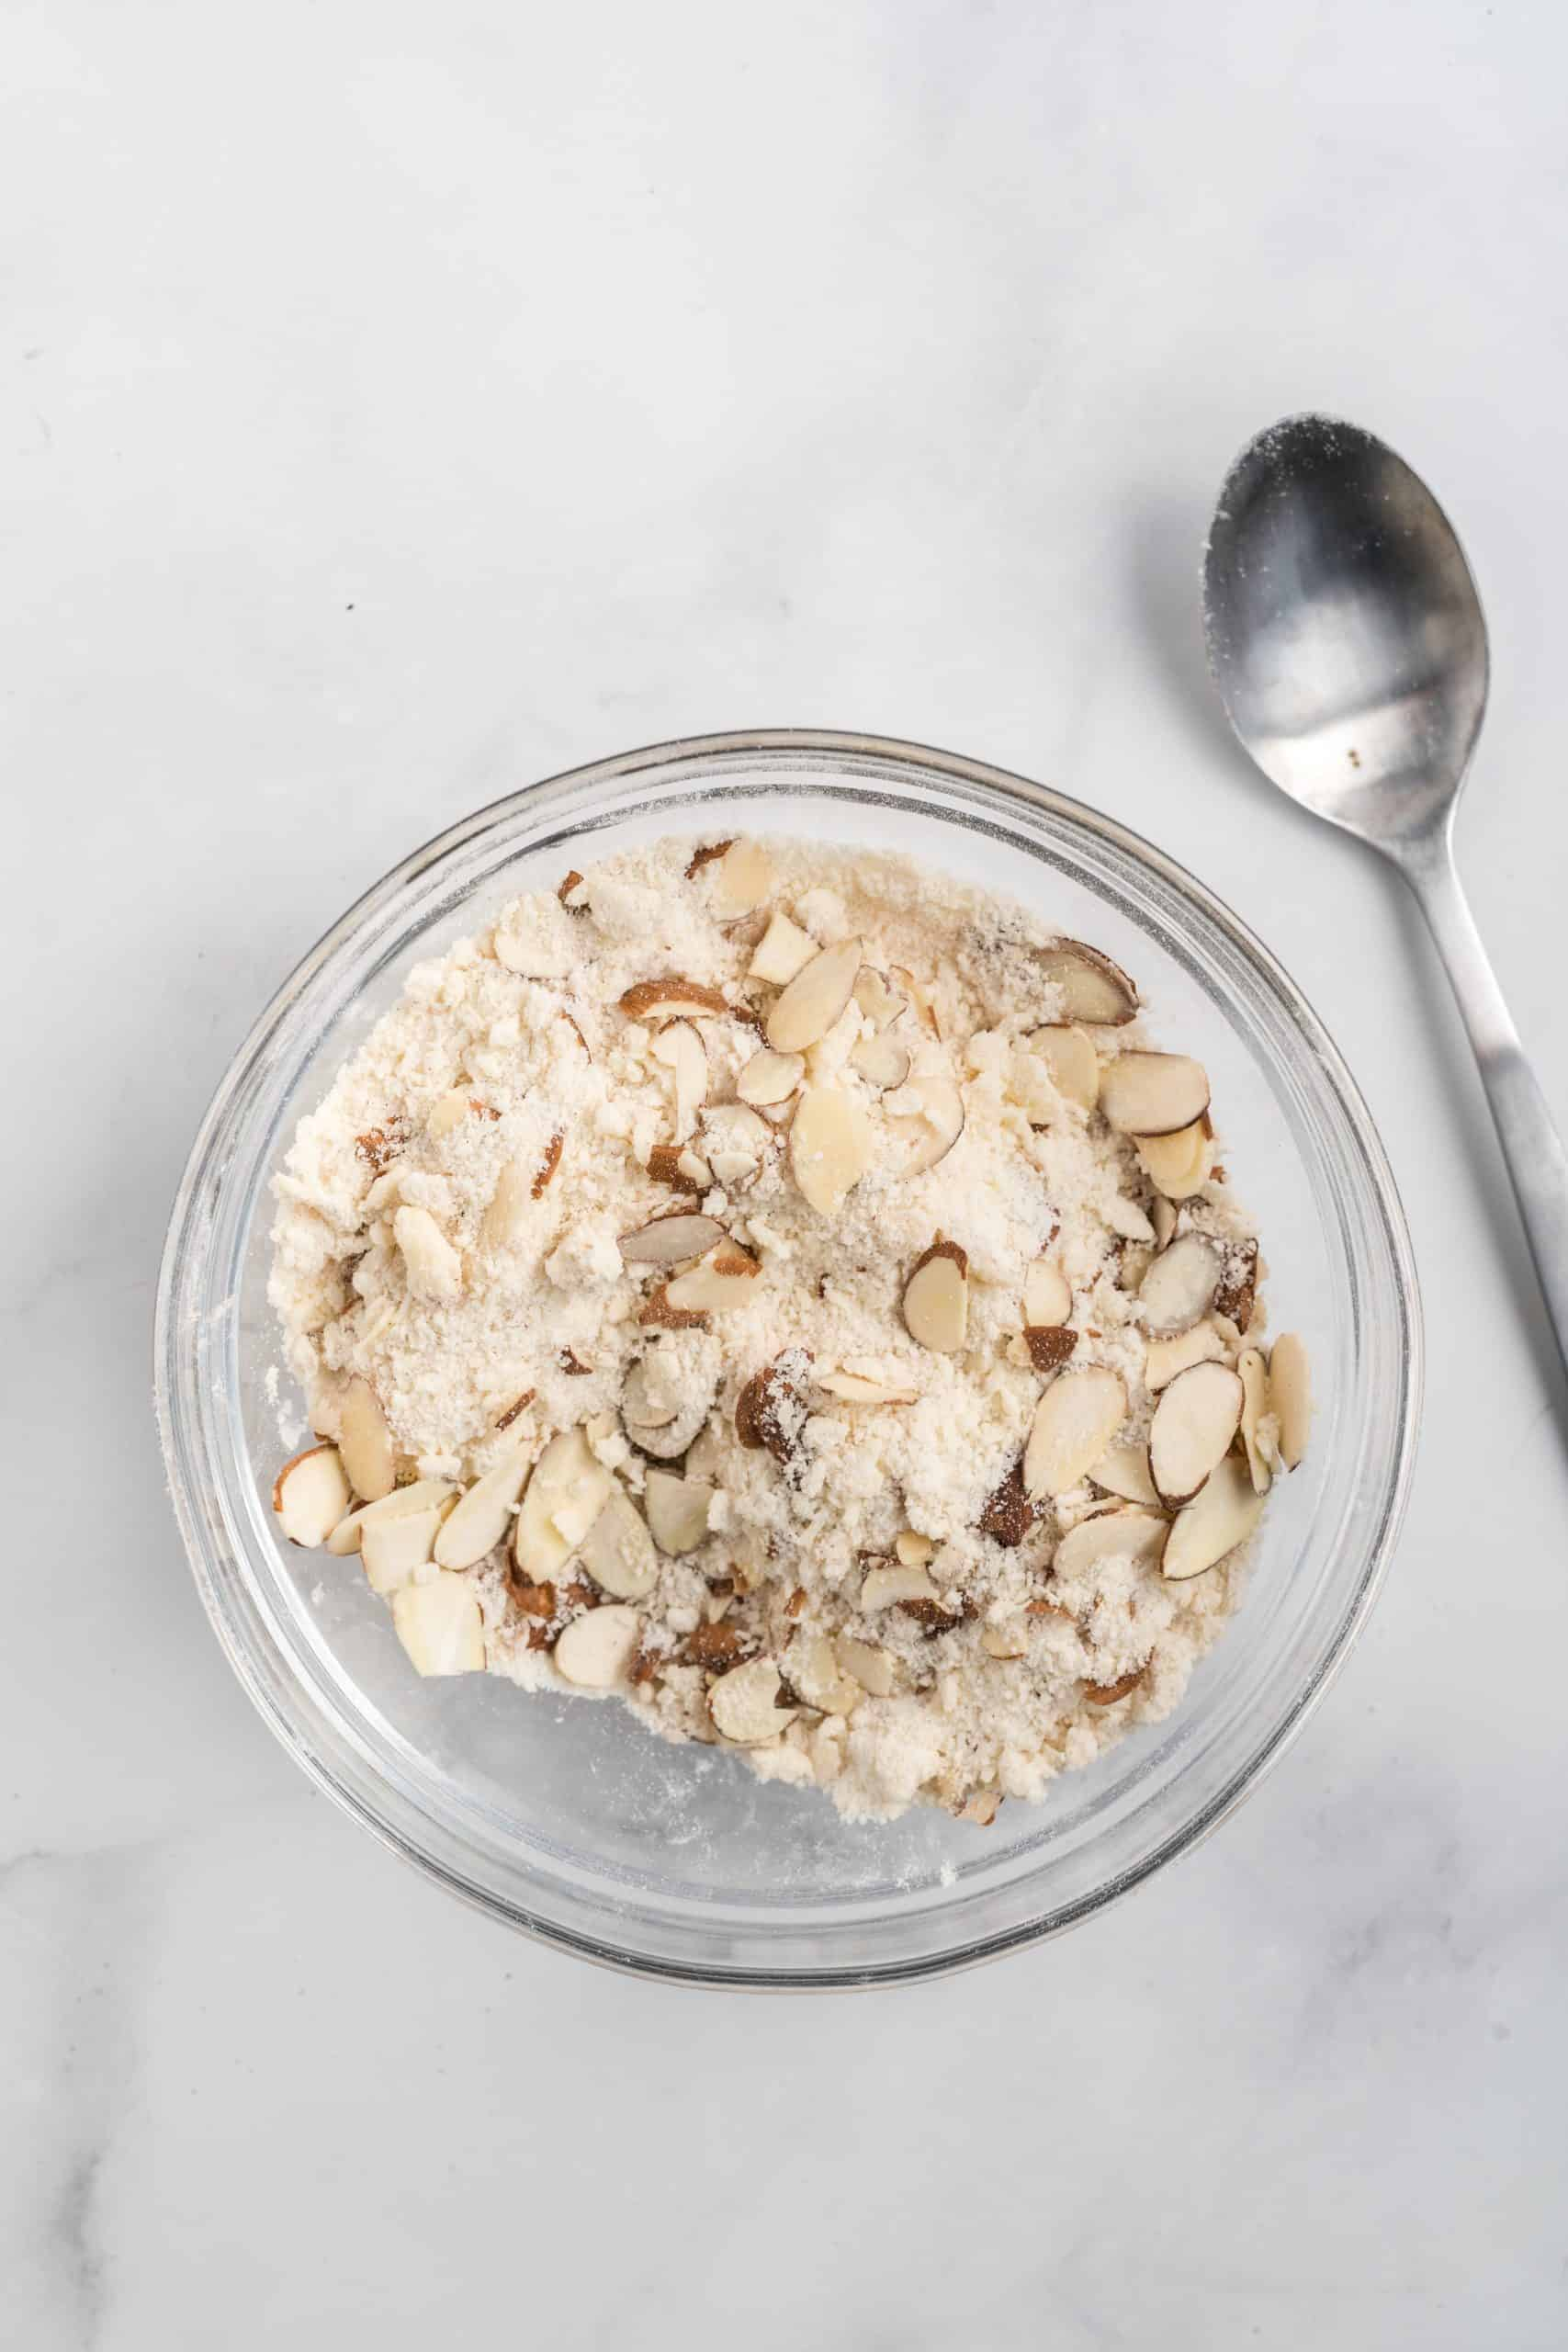 streusel ingredients in a small clear bowl with a silver spoon on the side.